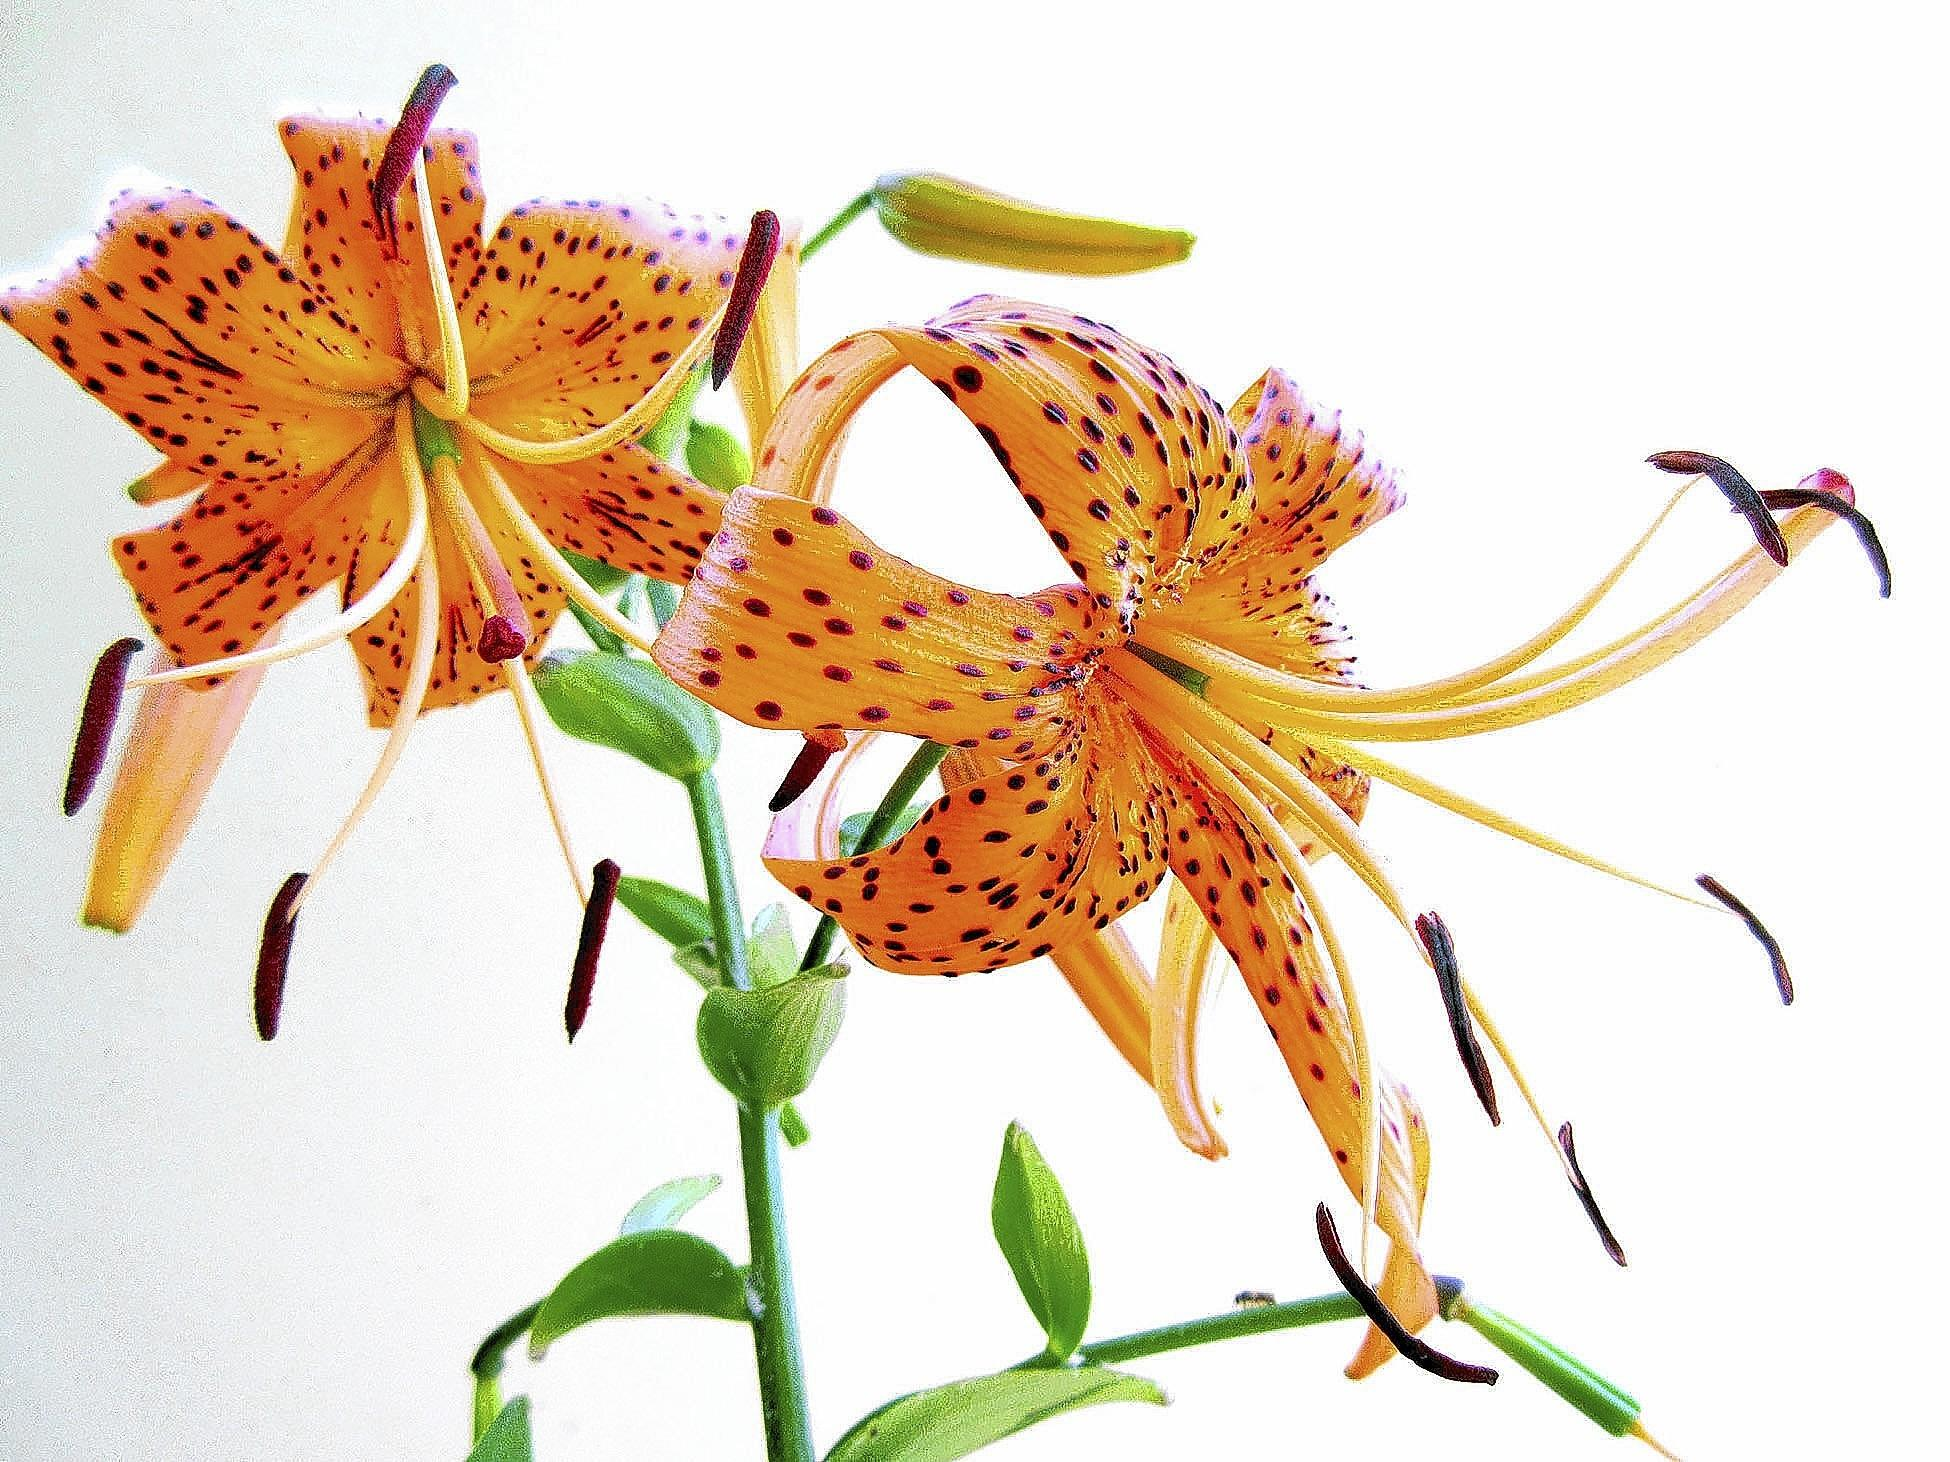 Garden column tiger lillies also arent native and are less tiger lilies lilium lancifolium are hybrid asian lilies that escaped into the wild in izmirmasajfo